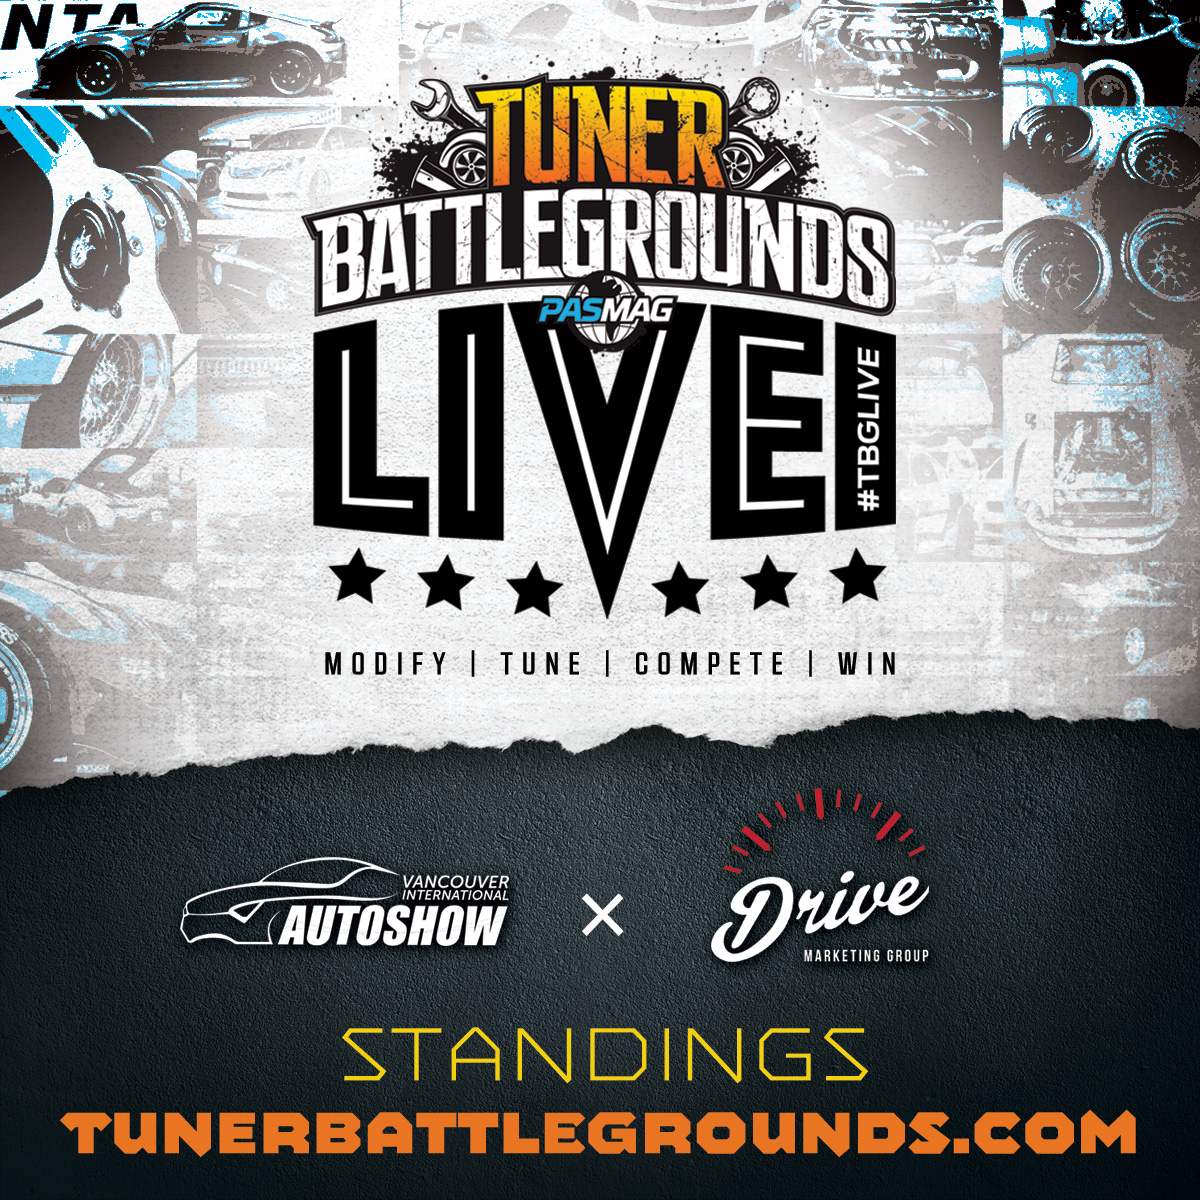 Tuner-Battlegrounds-TBGLIVE-Event-Partner-VIAS-2016-Standings